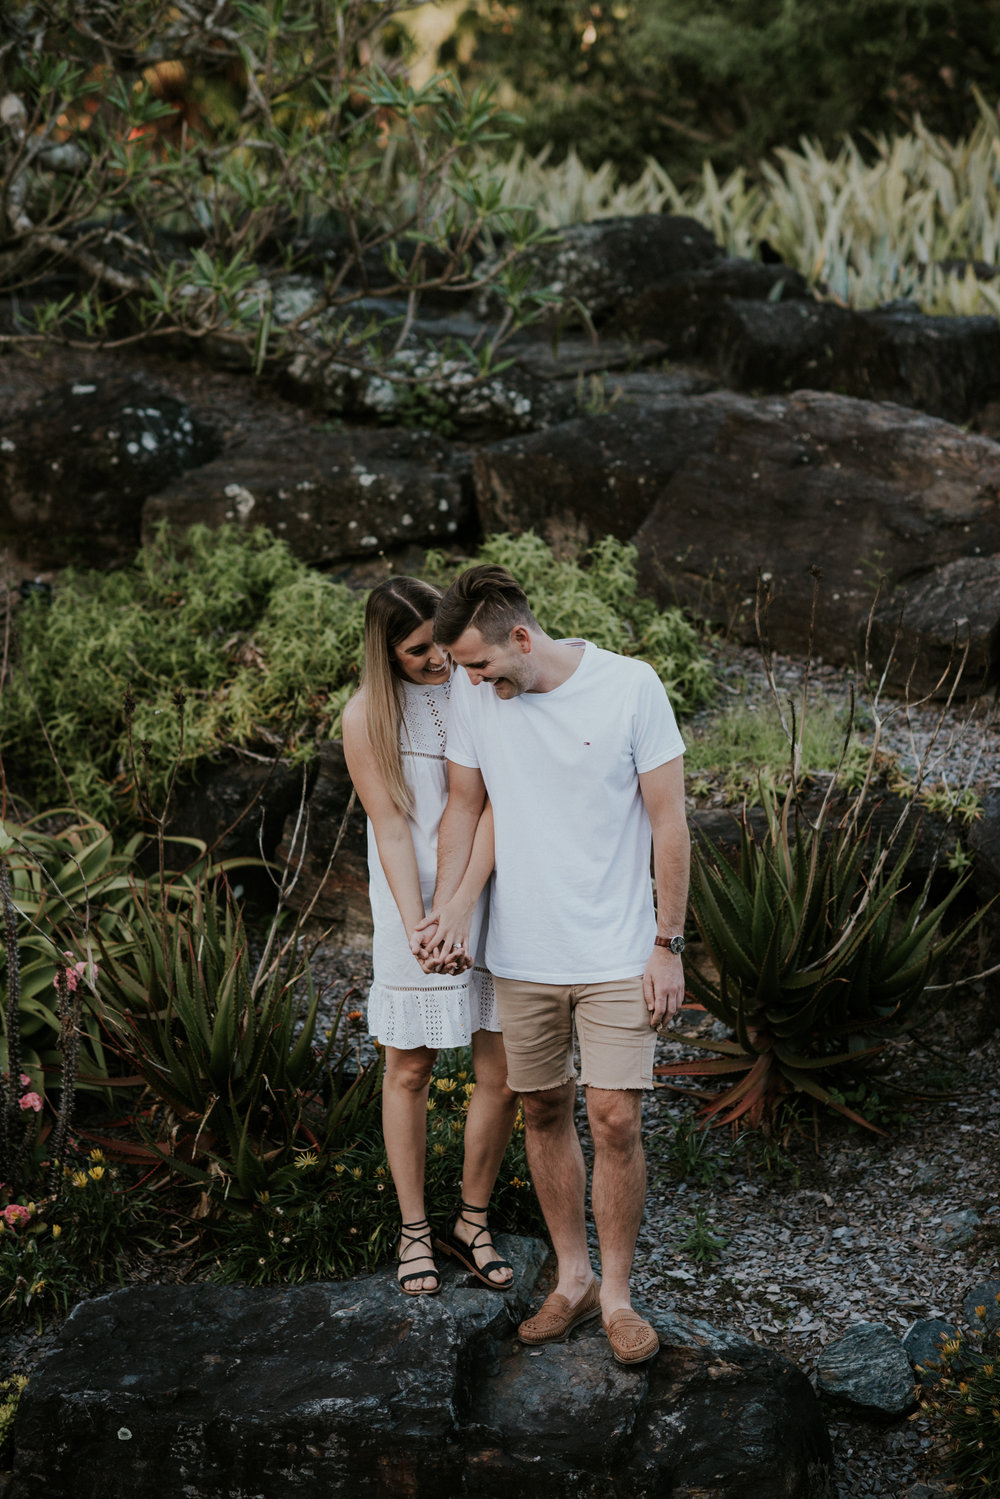 Brisbane Wedding Photographer | Engagement-Elopement Photography Botanical Gardens-19.jpg